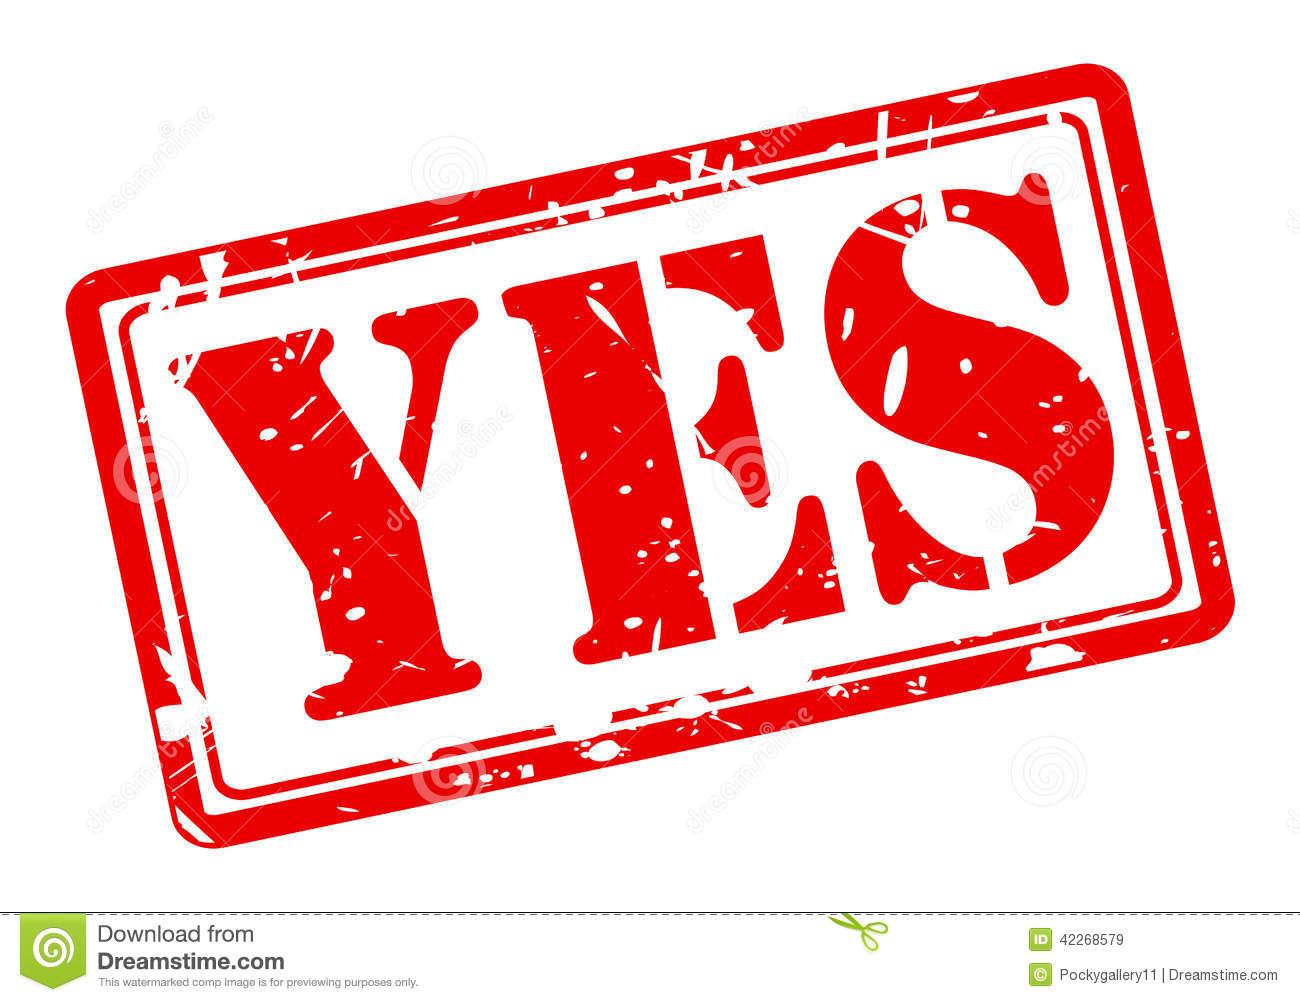 Image result for rED yES